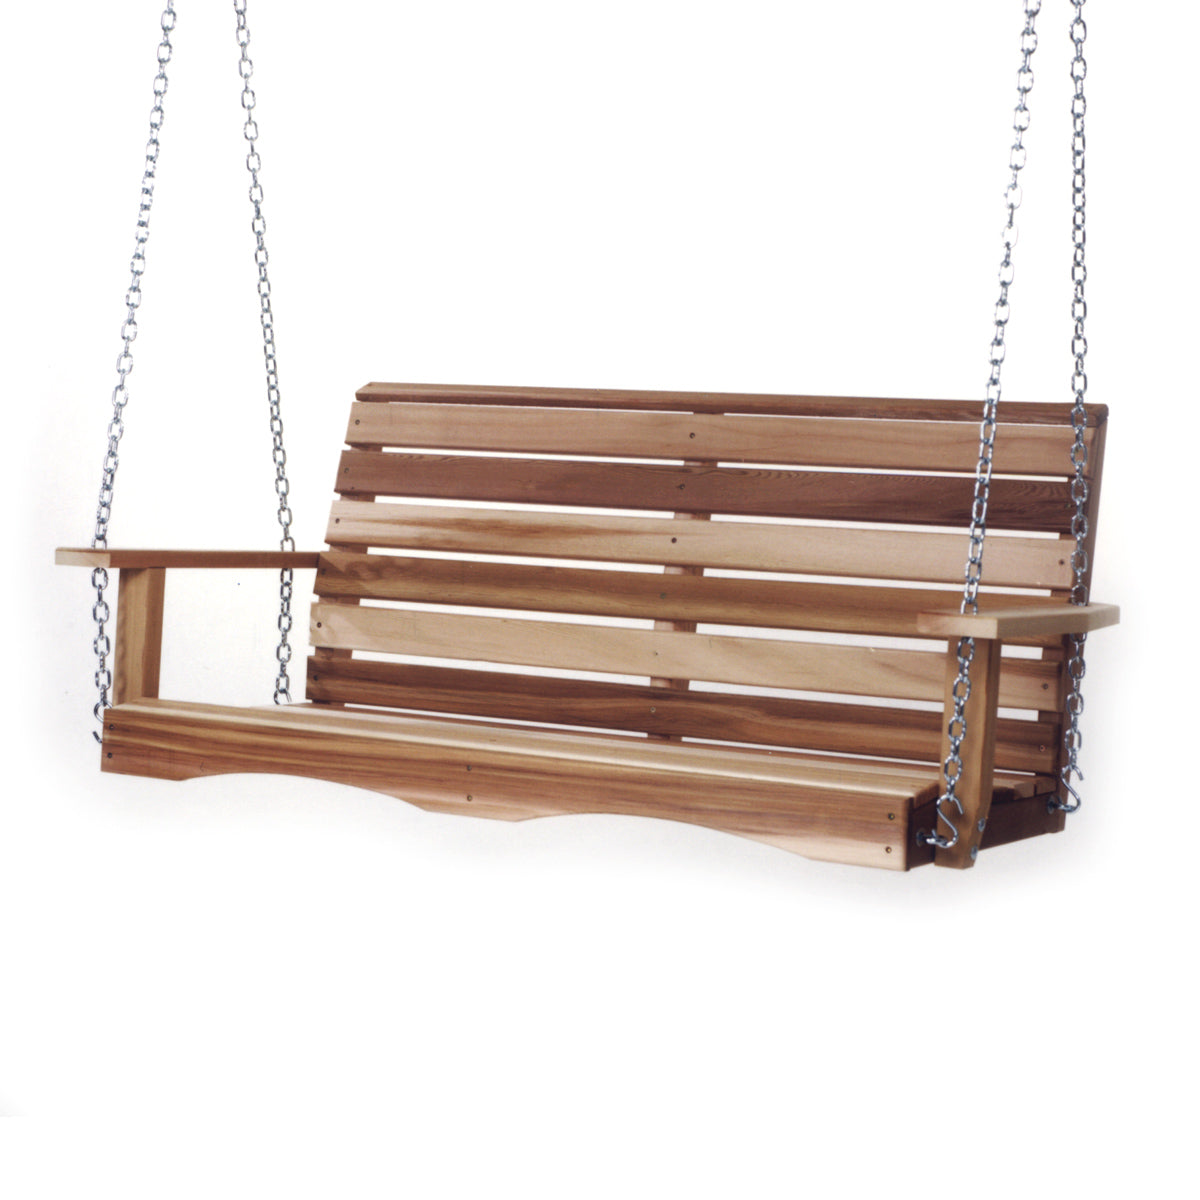 Porch Swing 4' By All Things Cedar - Swings and More